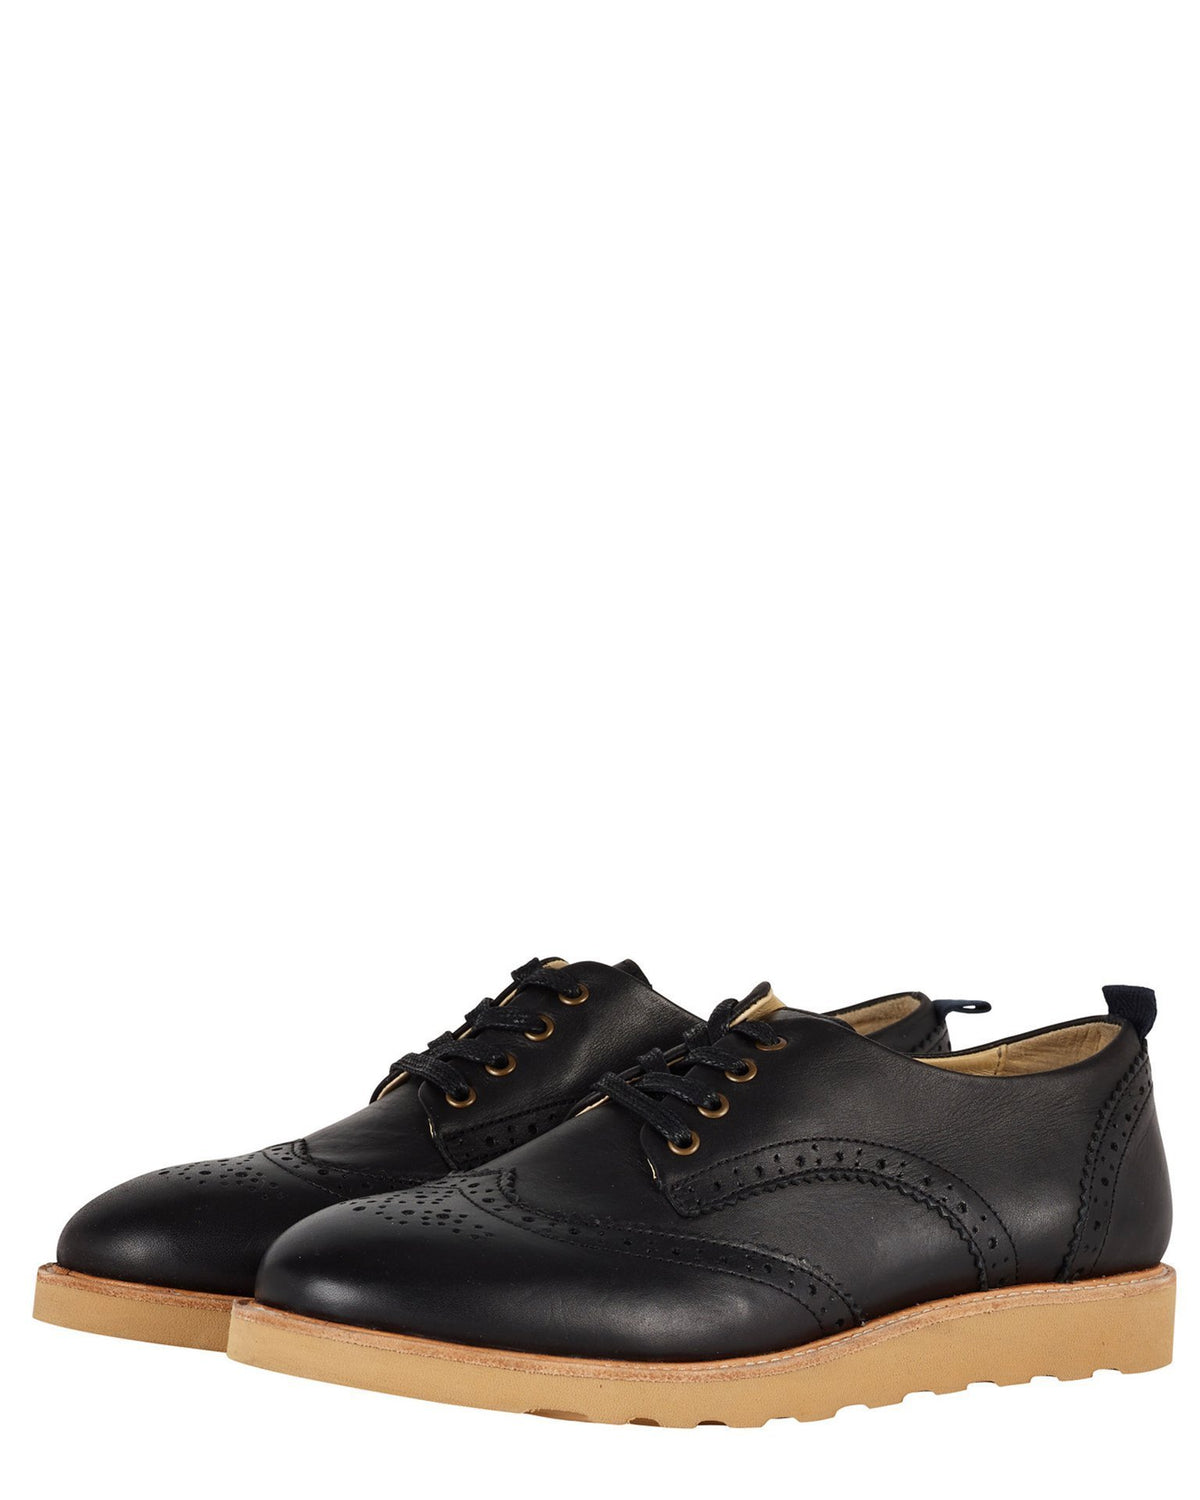 Young Soles Shoes Brogue Shoe in Black